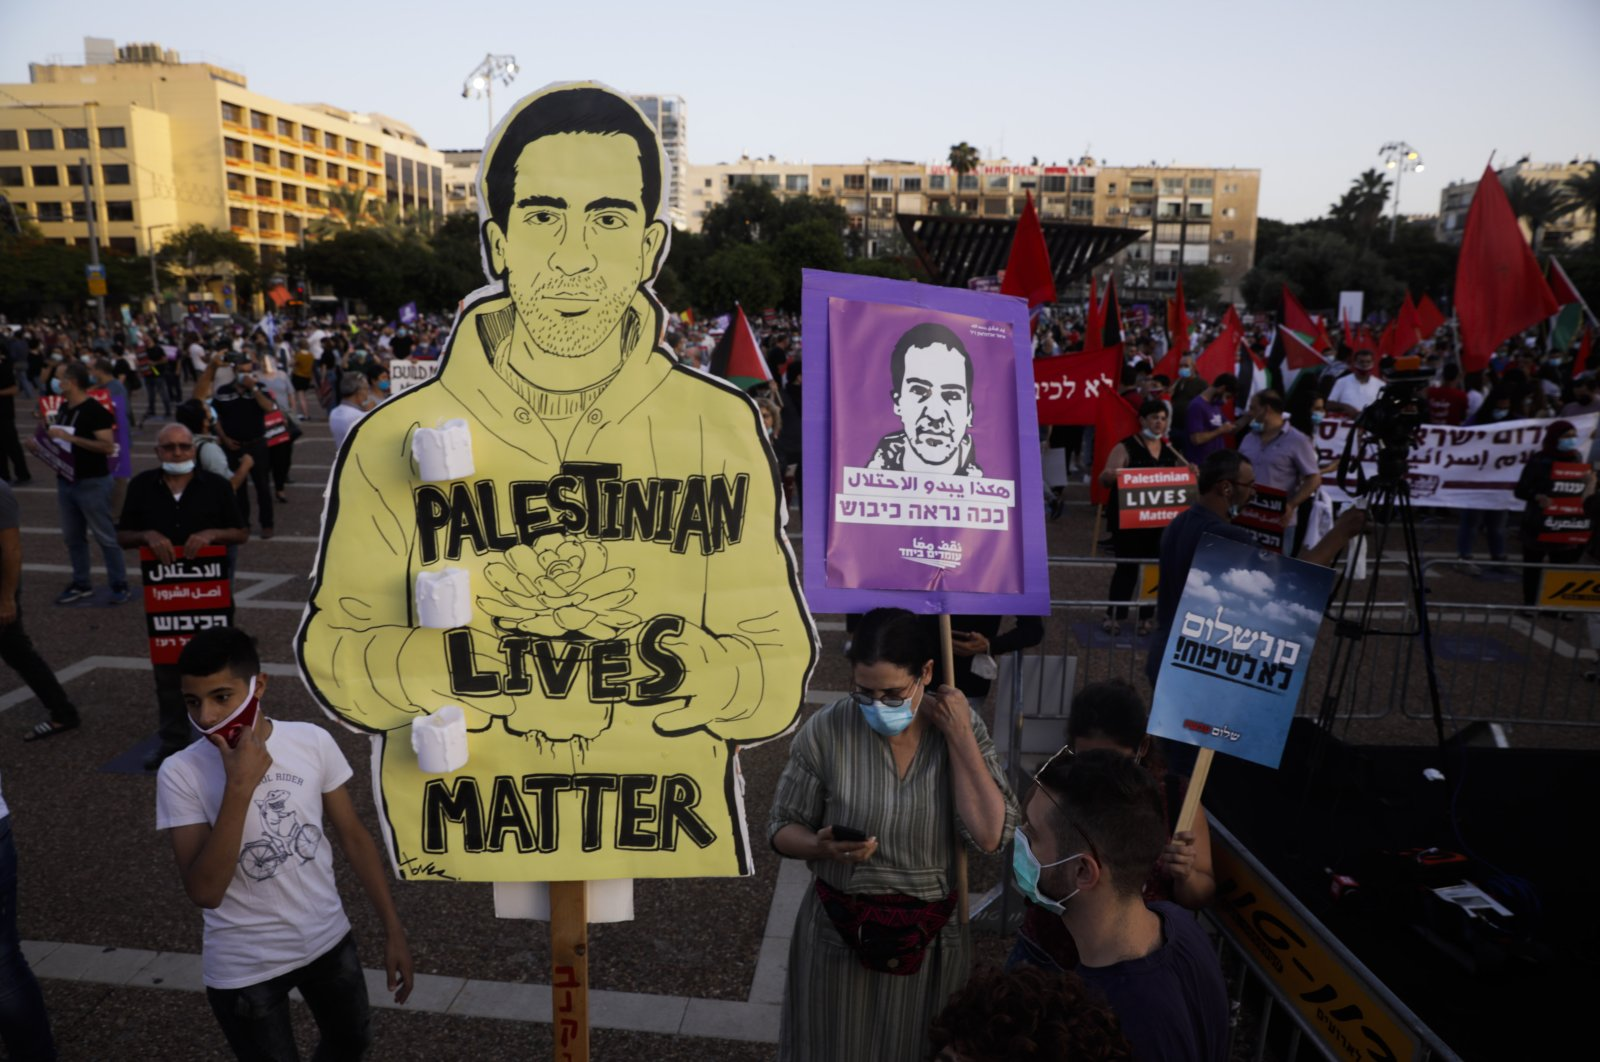 Protesters attend a rally against Israel plans to annex parts of the West Bank, in Tel Aviv, Israel, Saturday, June 6, 2020. (AP Photo)